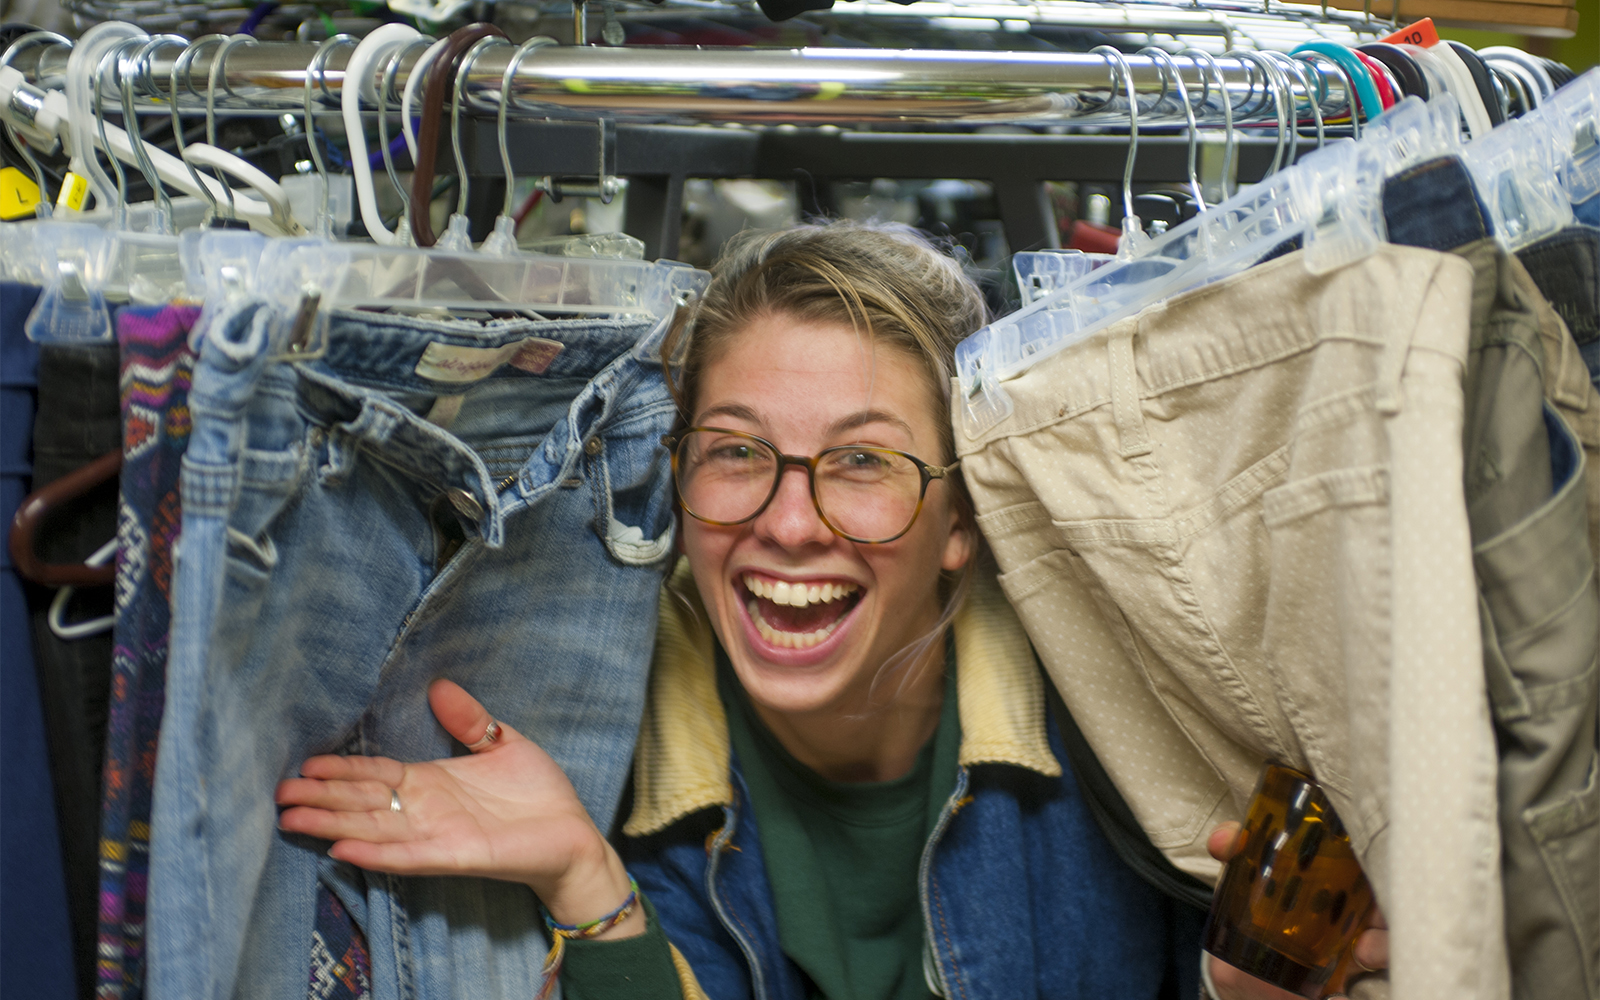 Student in clothes rack in Reuse Room